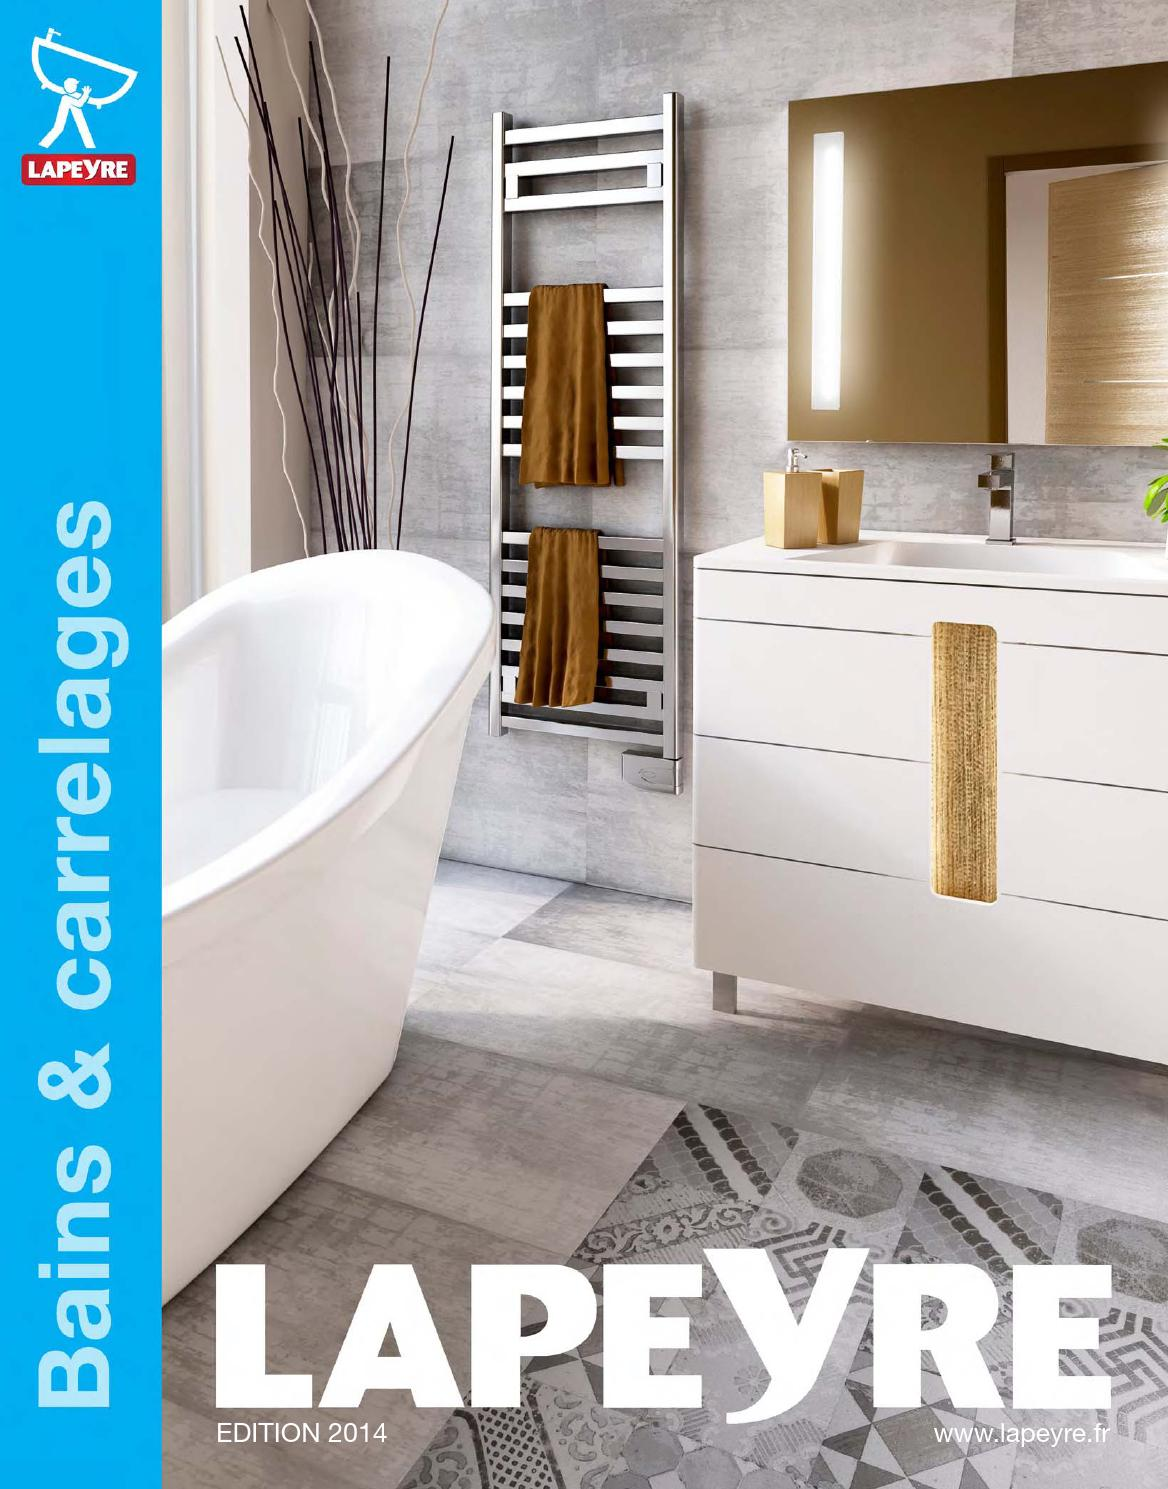 Catalogue lapeyre bains carrelages 2014 by joe monroe issuu for Tabouret salle de bain lapeyre